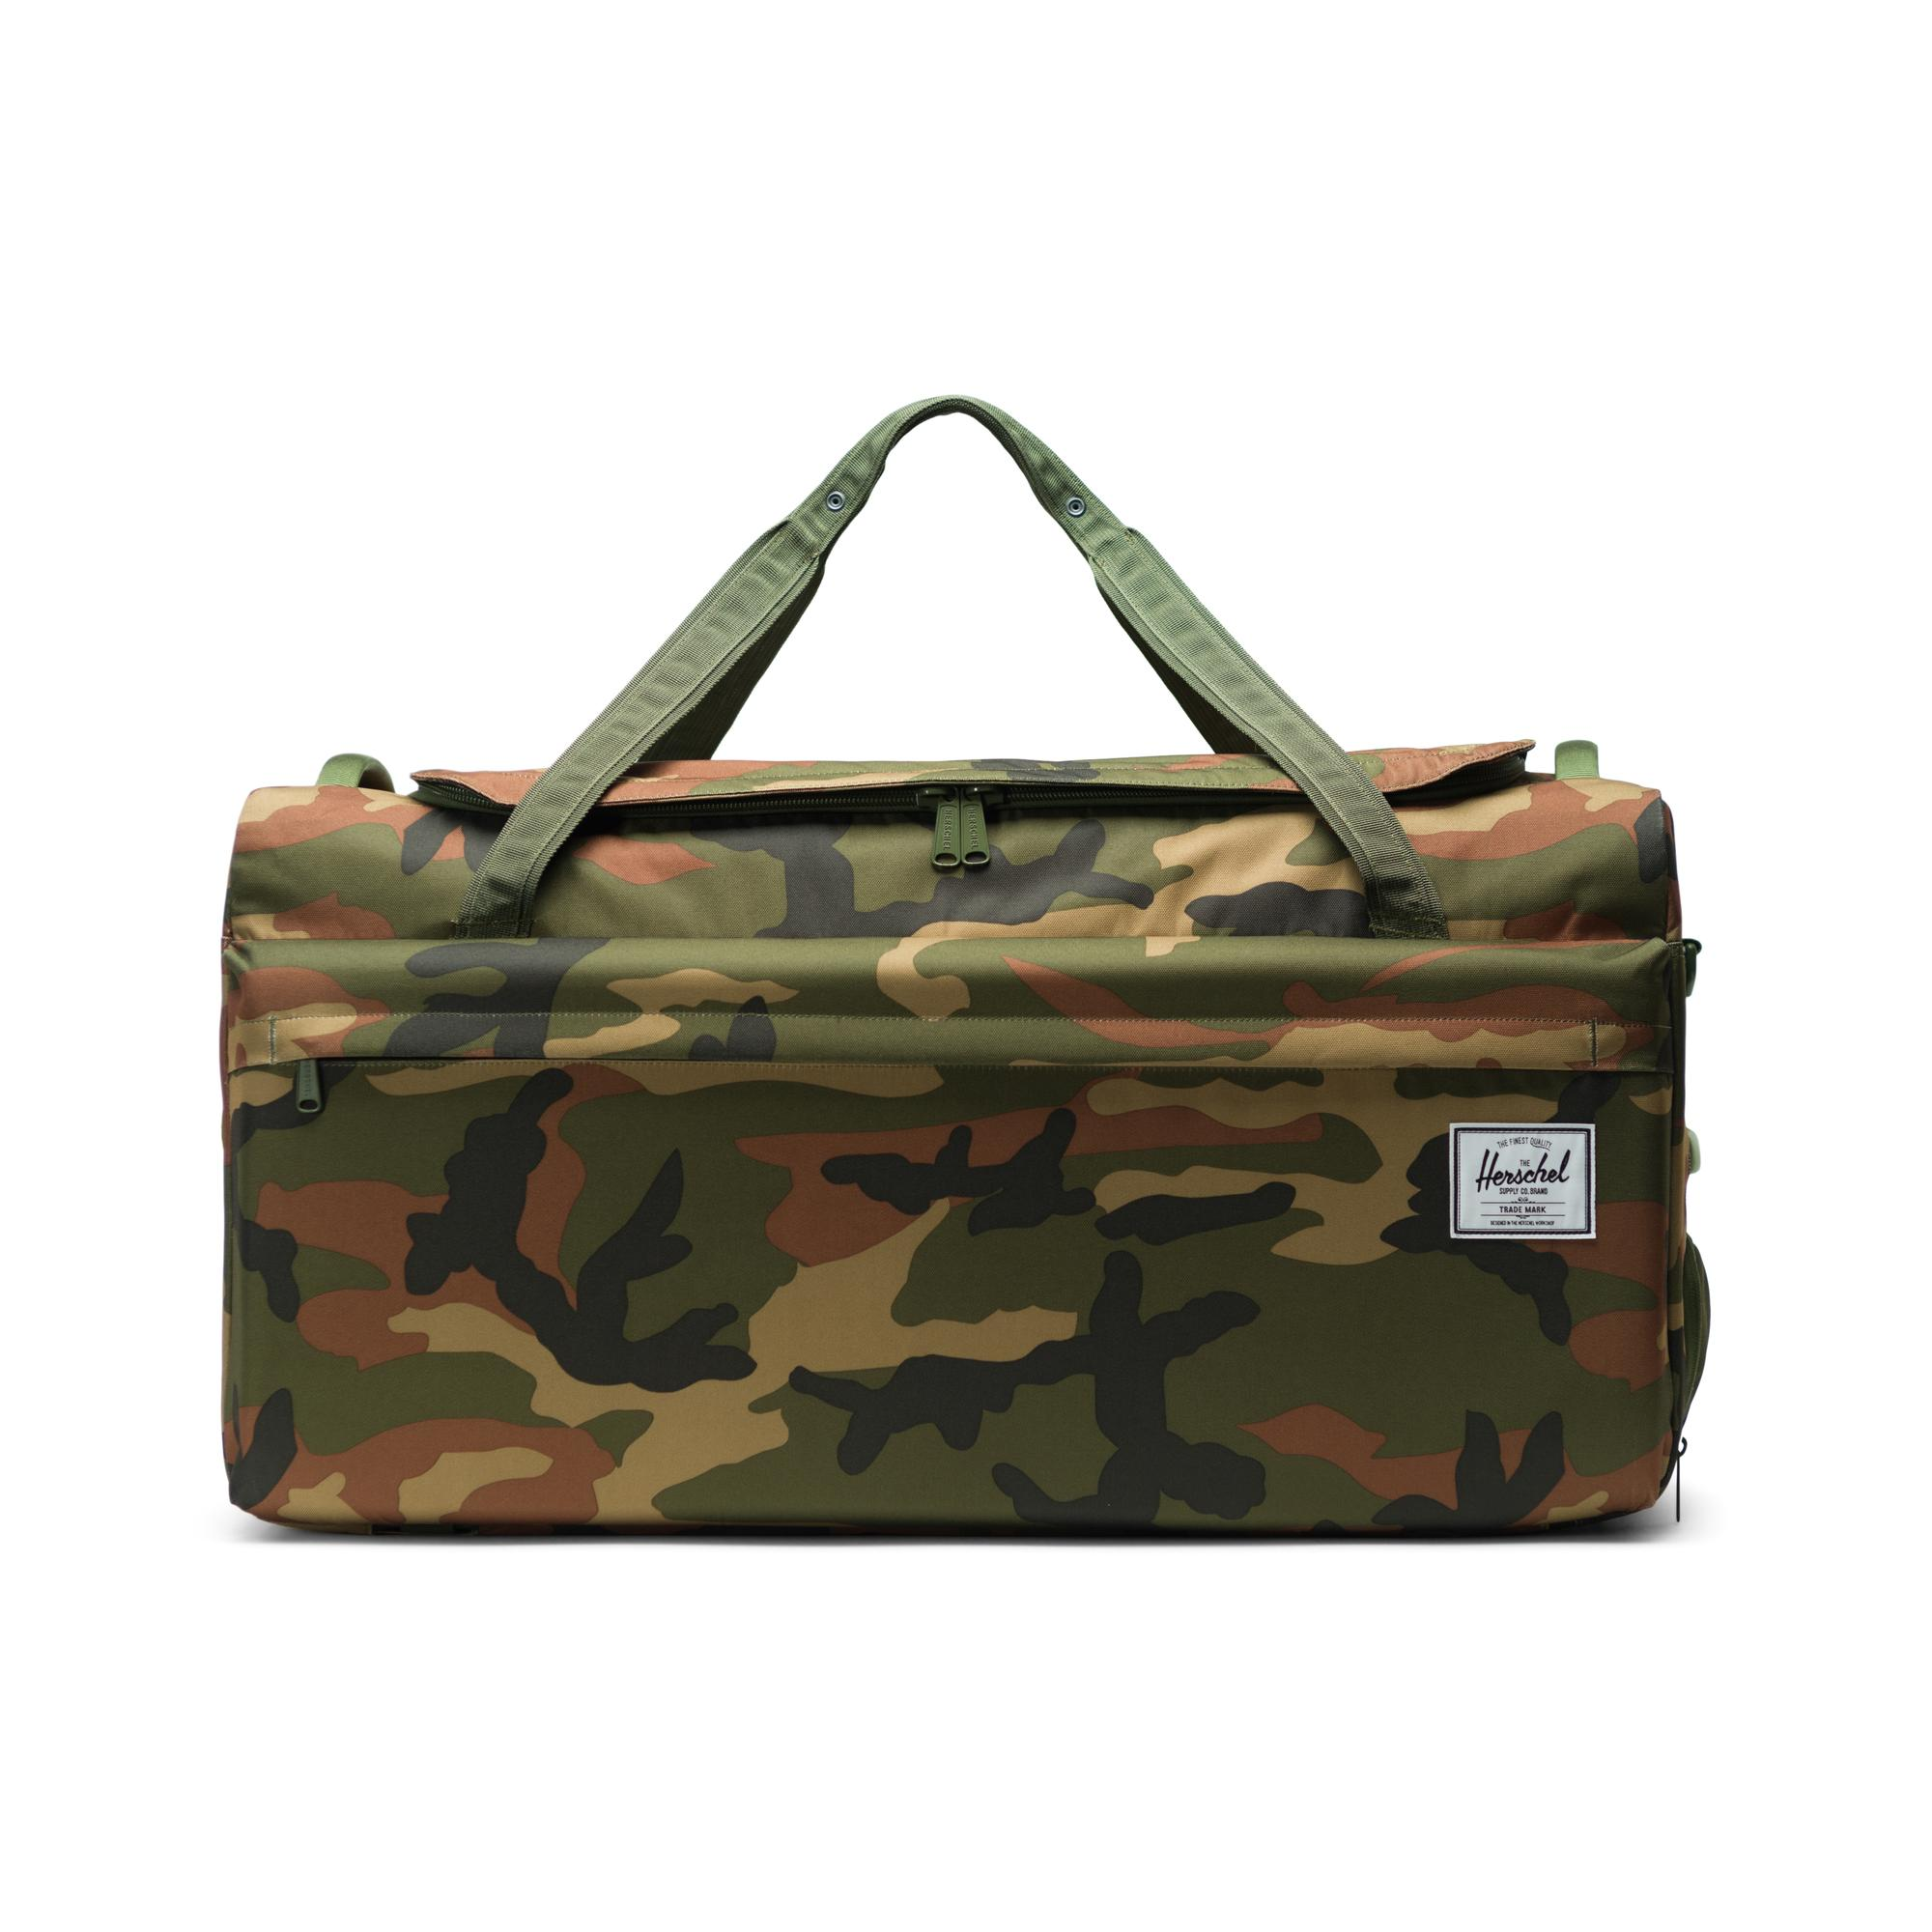 Outfitter Luggage | 90 L by Herschel Supply Co.